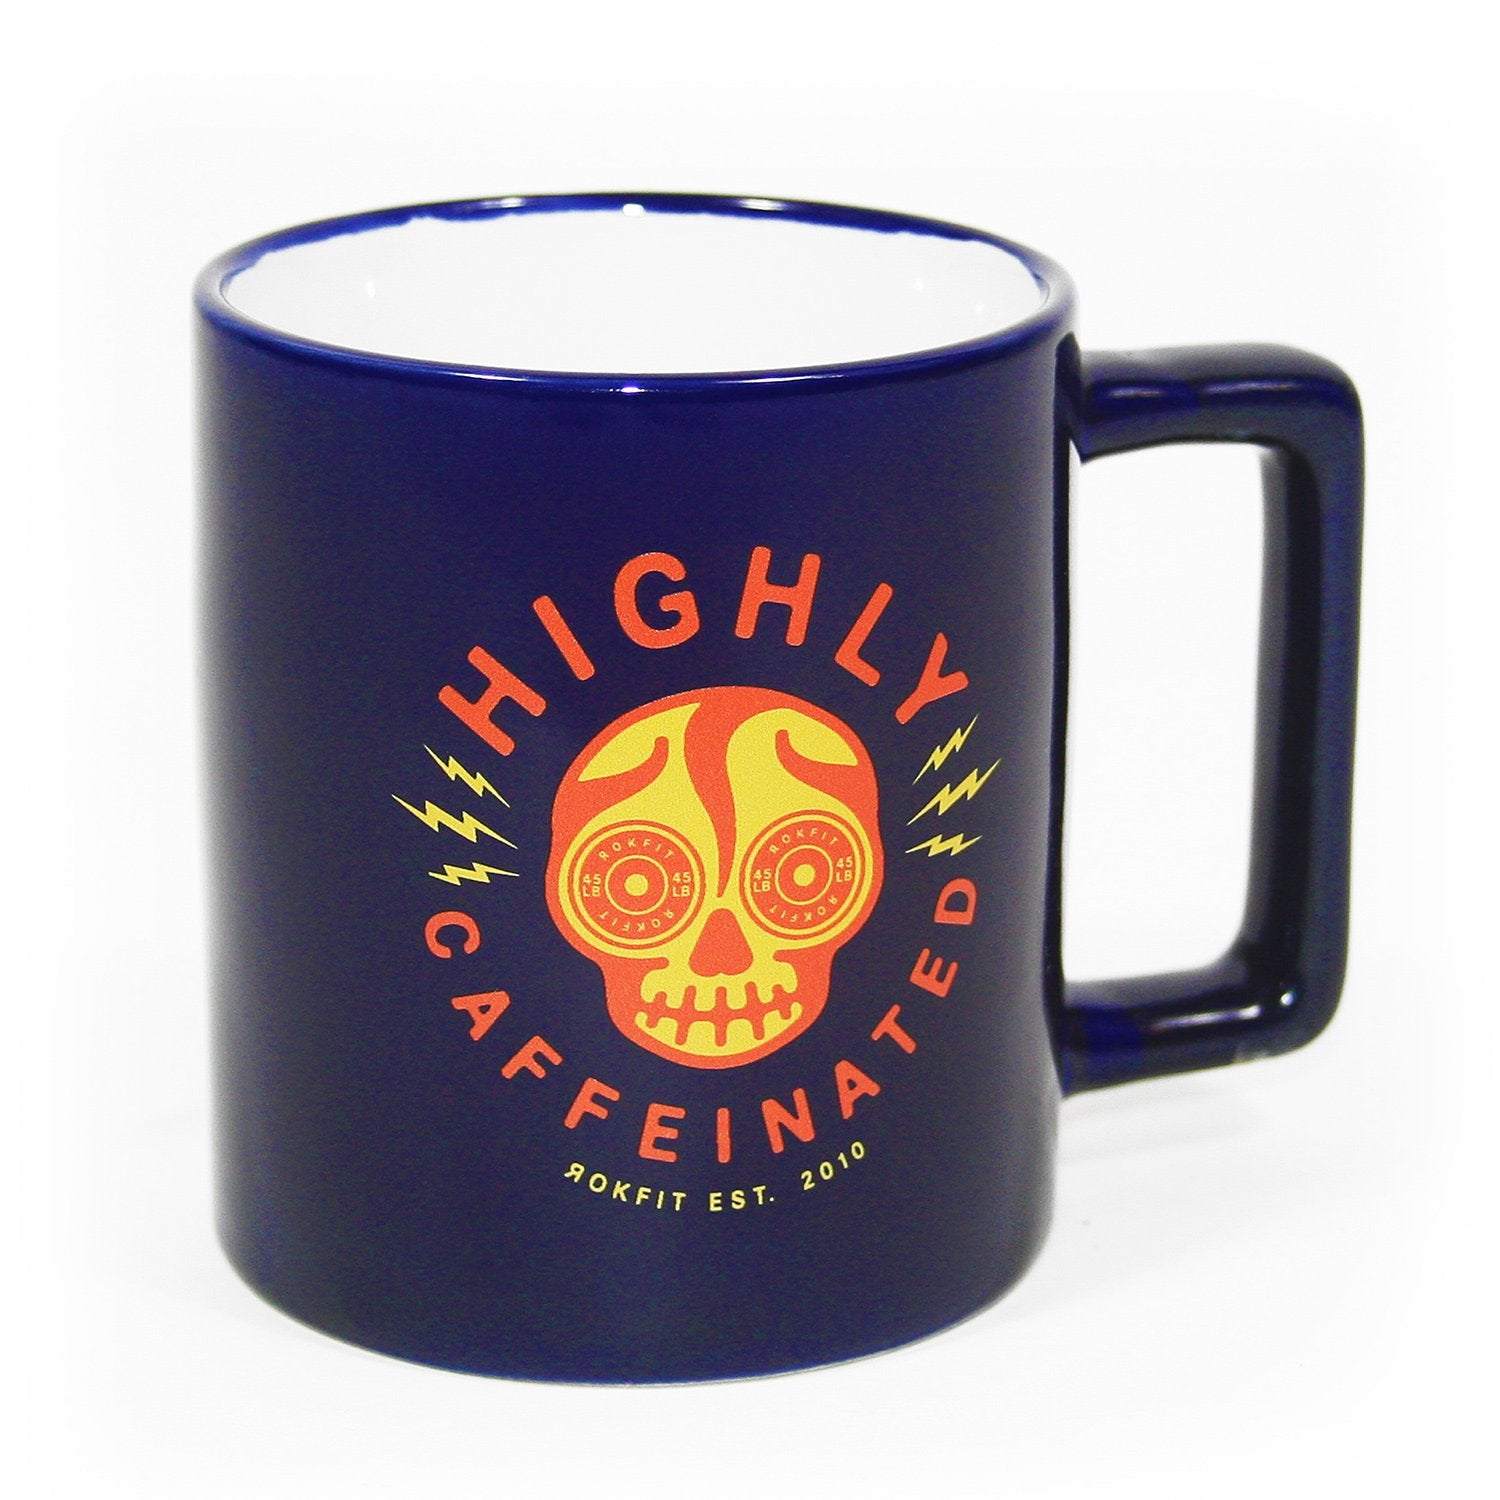 Highly Caffeinated Coffee Mug